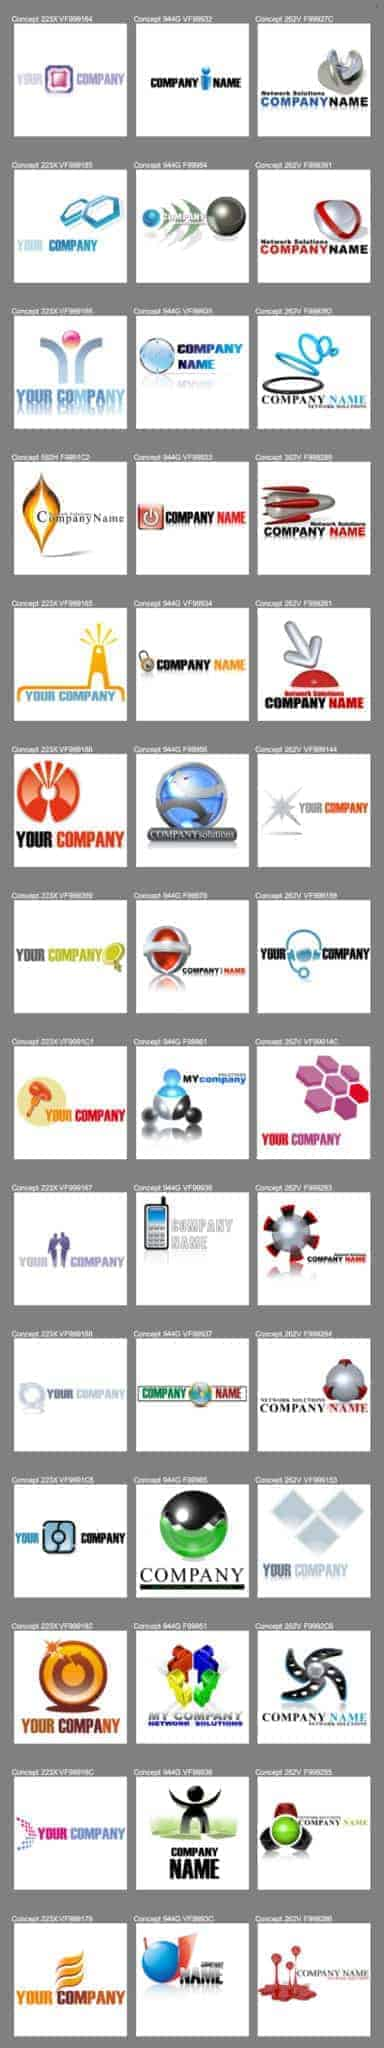 learn the elements of a great logo